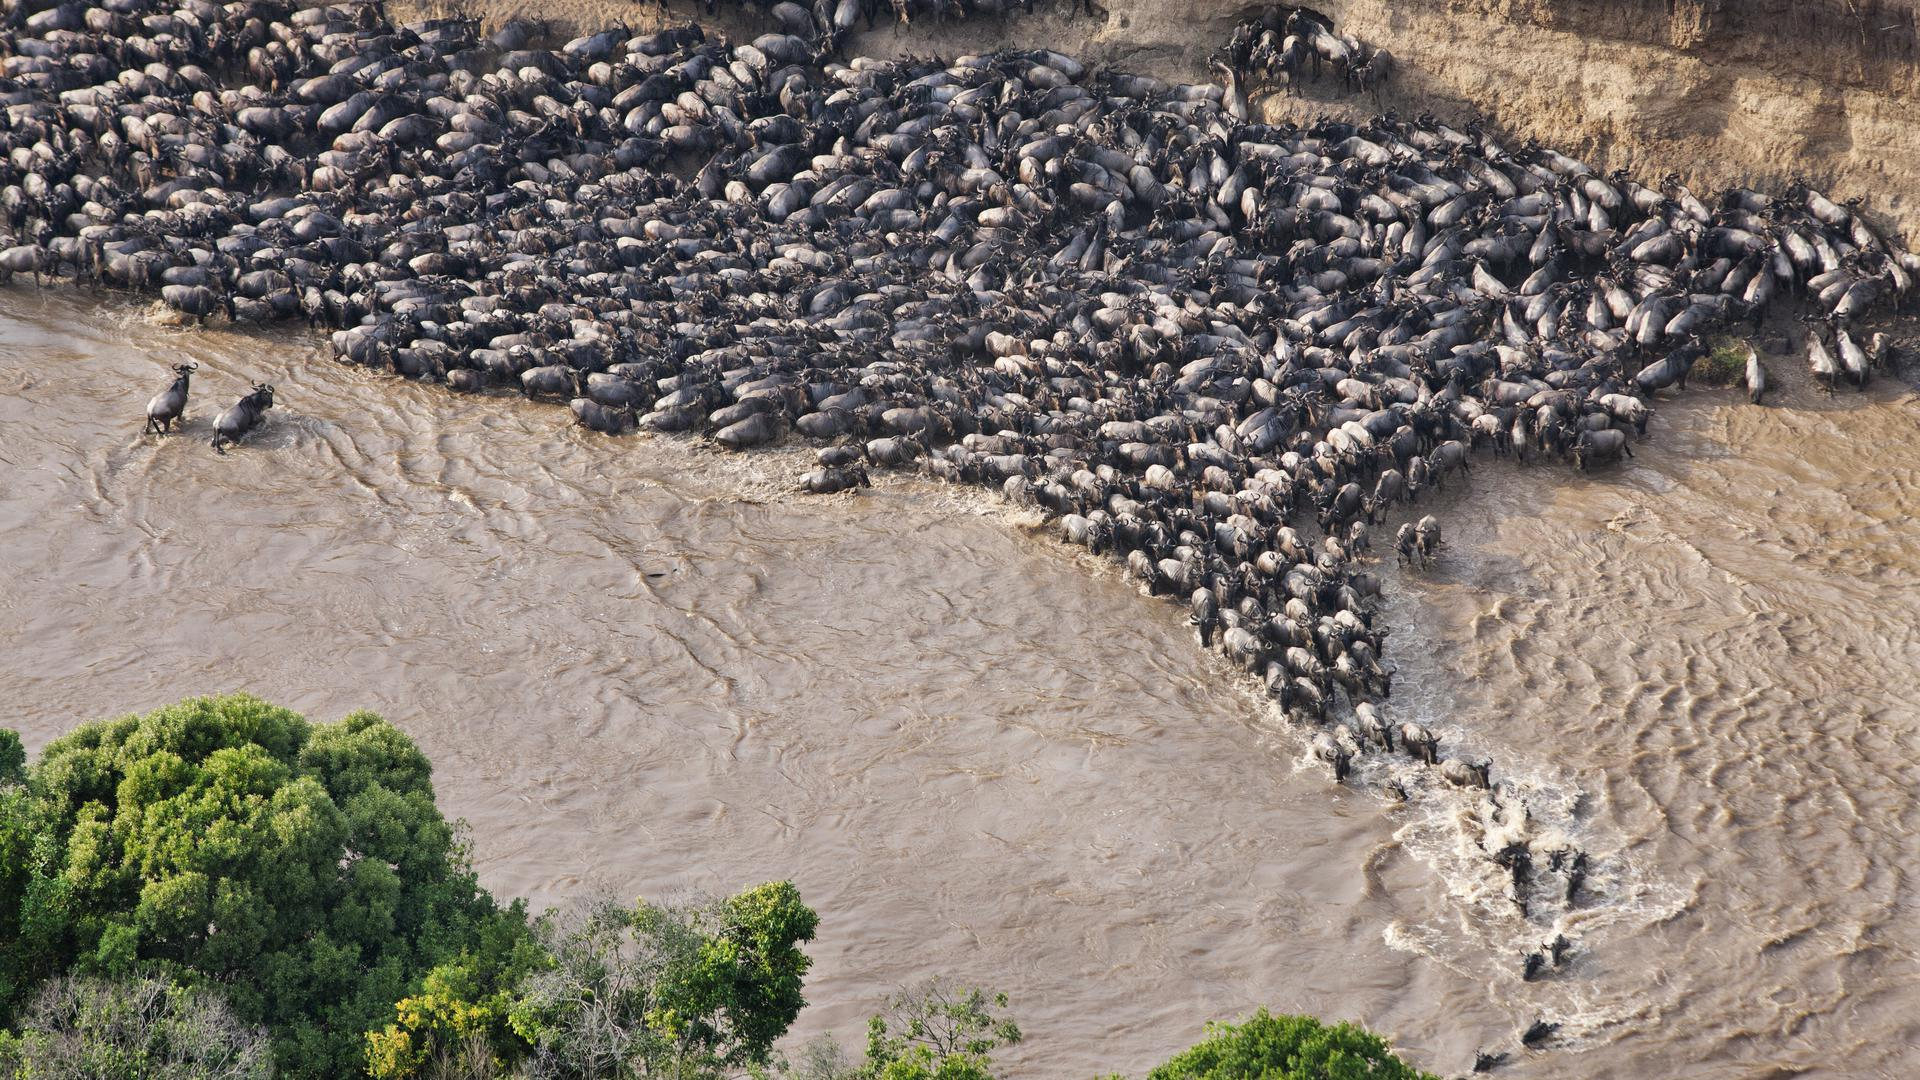 Aerial view of wildebeest trapped by high cliffs while crossing the Mara River. Every year thousands of wildebeest die while crossing the river due to strong currents or crossing at unfavourable crossing sights. Masai Mara National Reserve. Kenya.